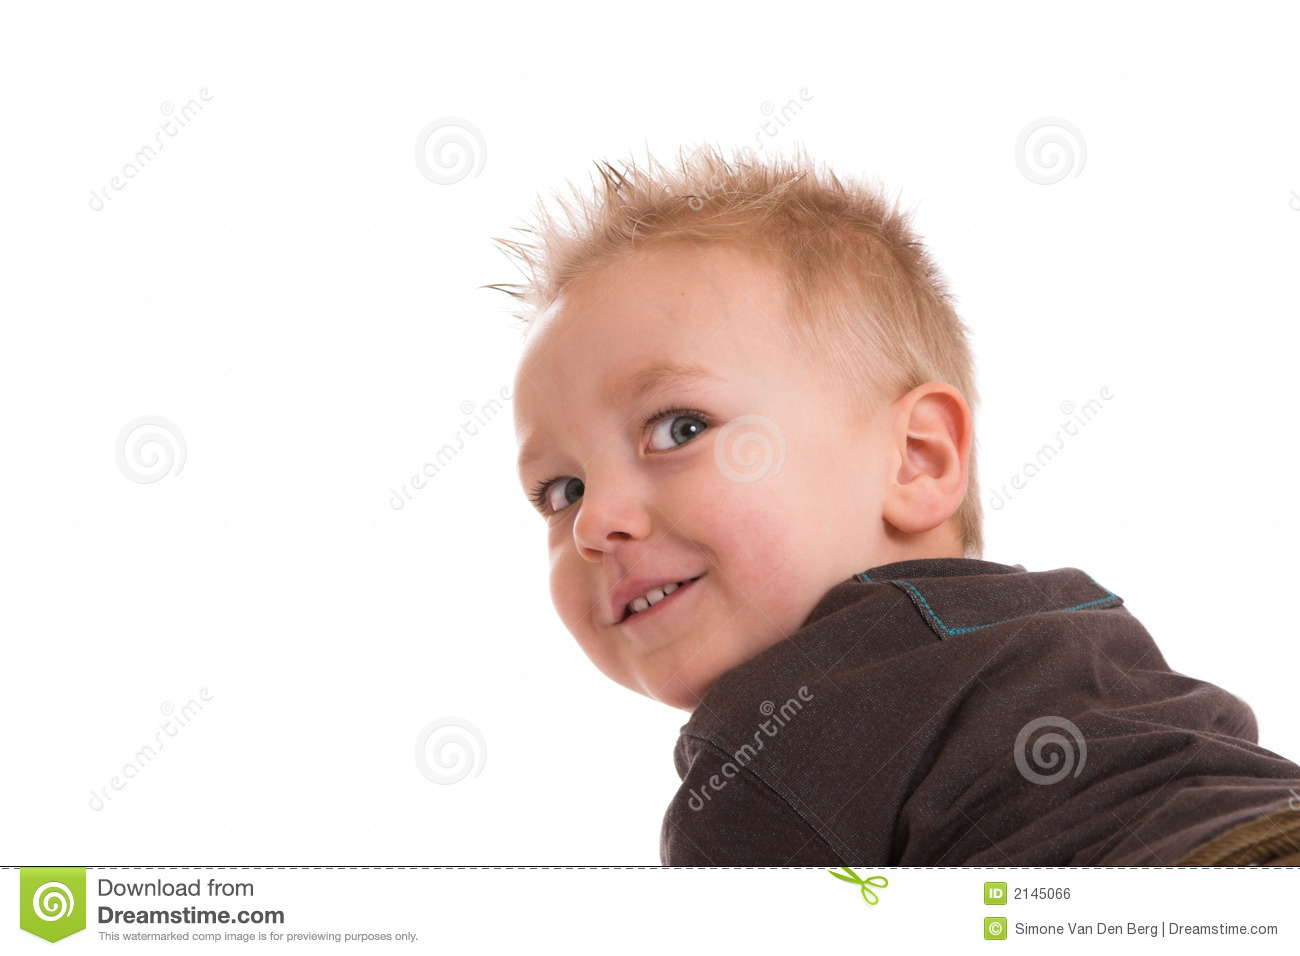 Cheeky Look Royalty Free Stock Image - Image: 2145066